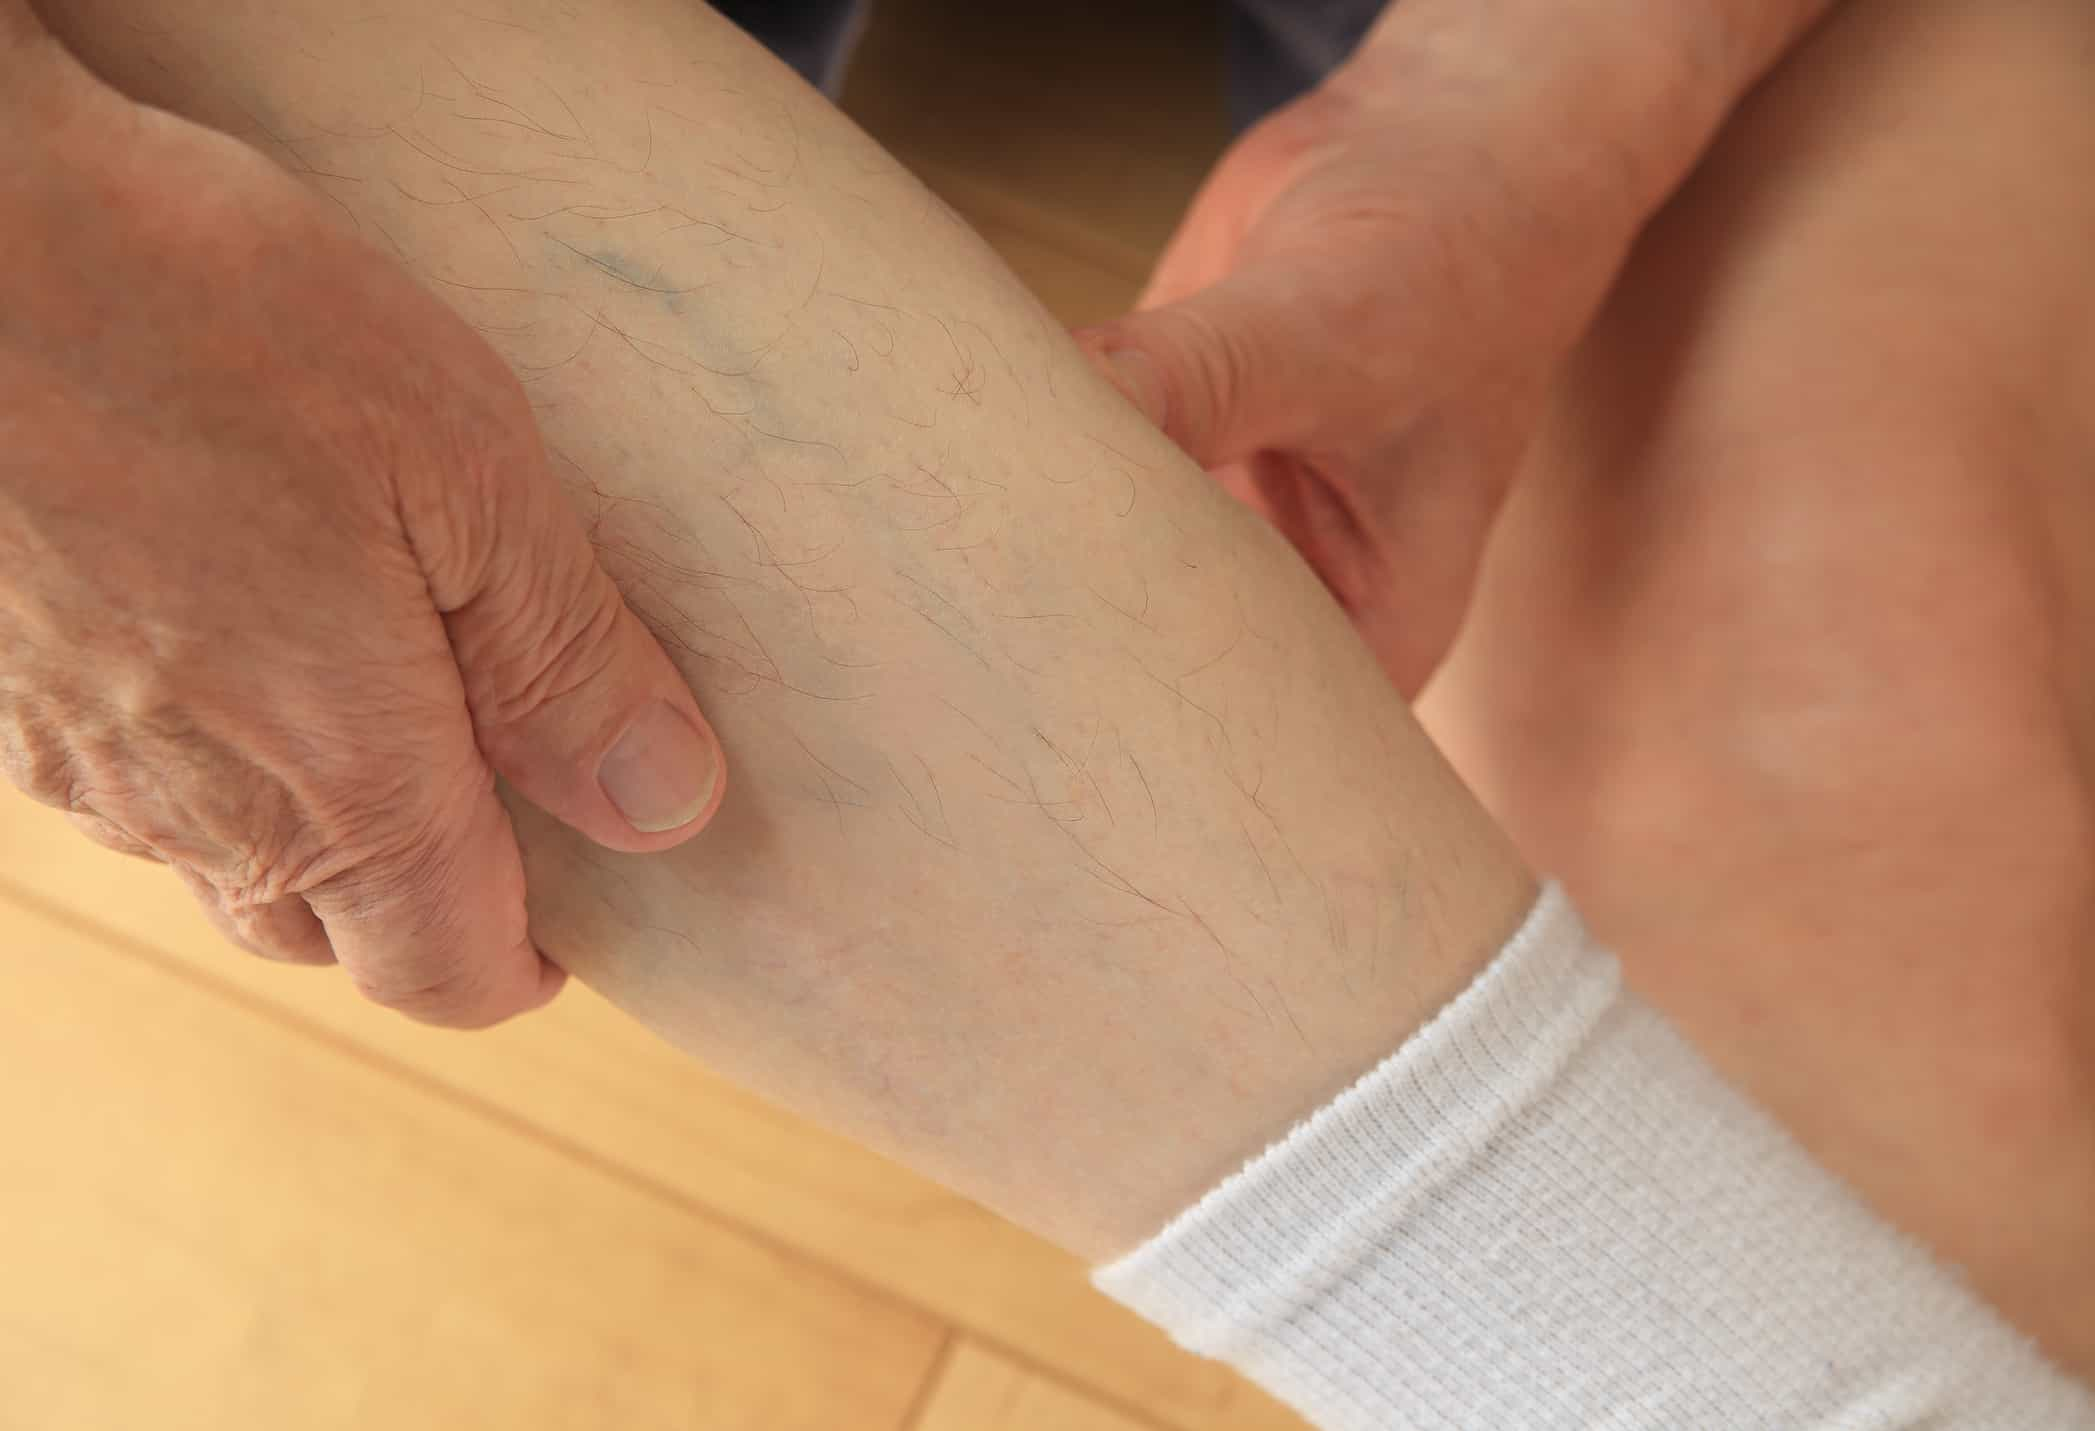 An older man with his hands on a sore calf